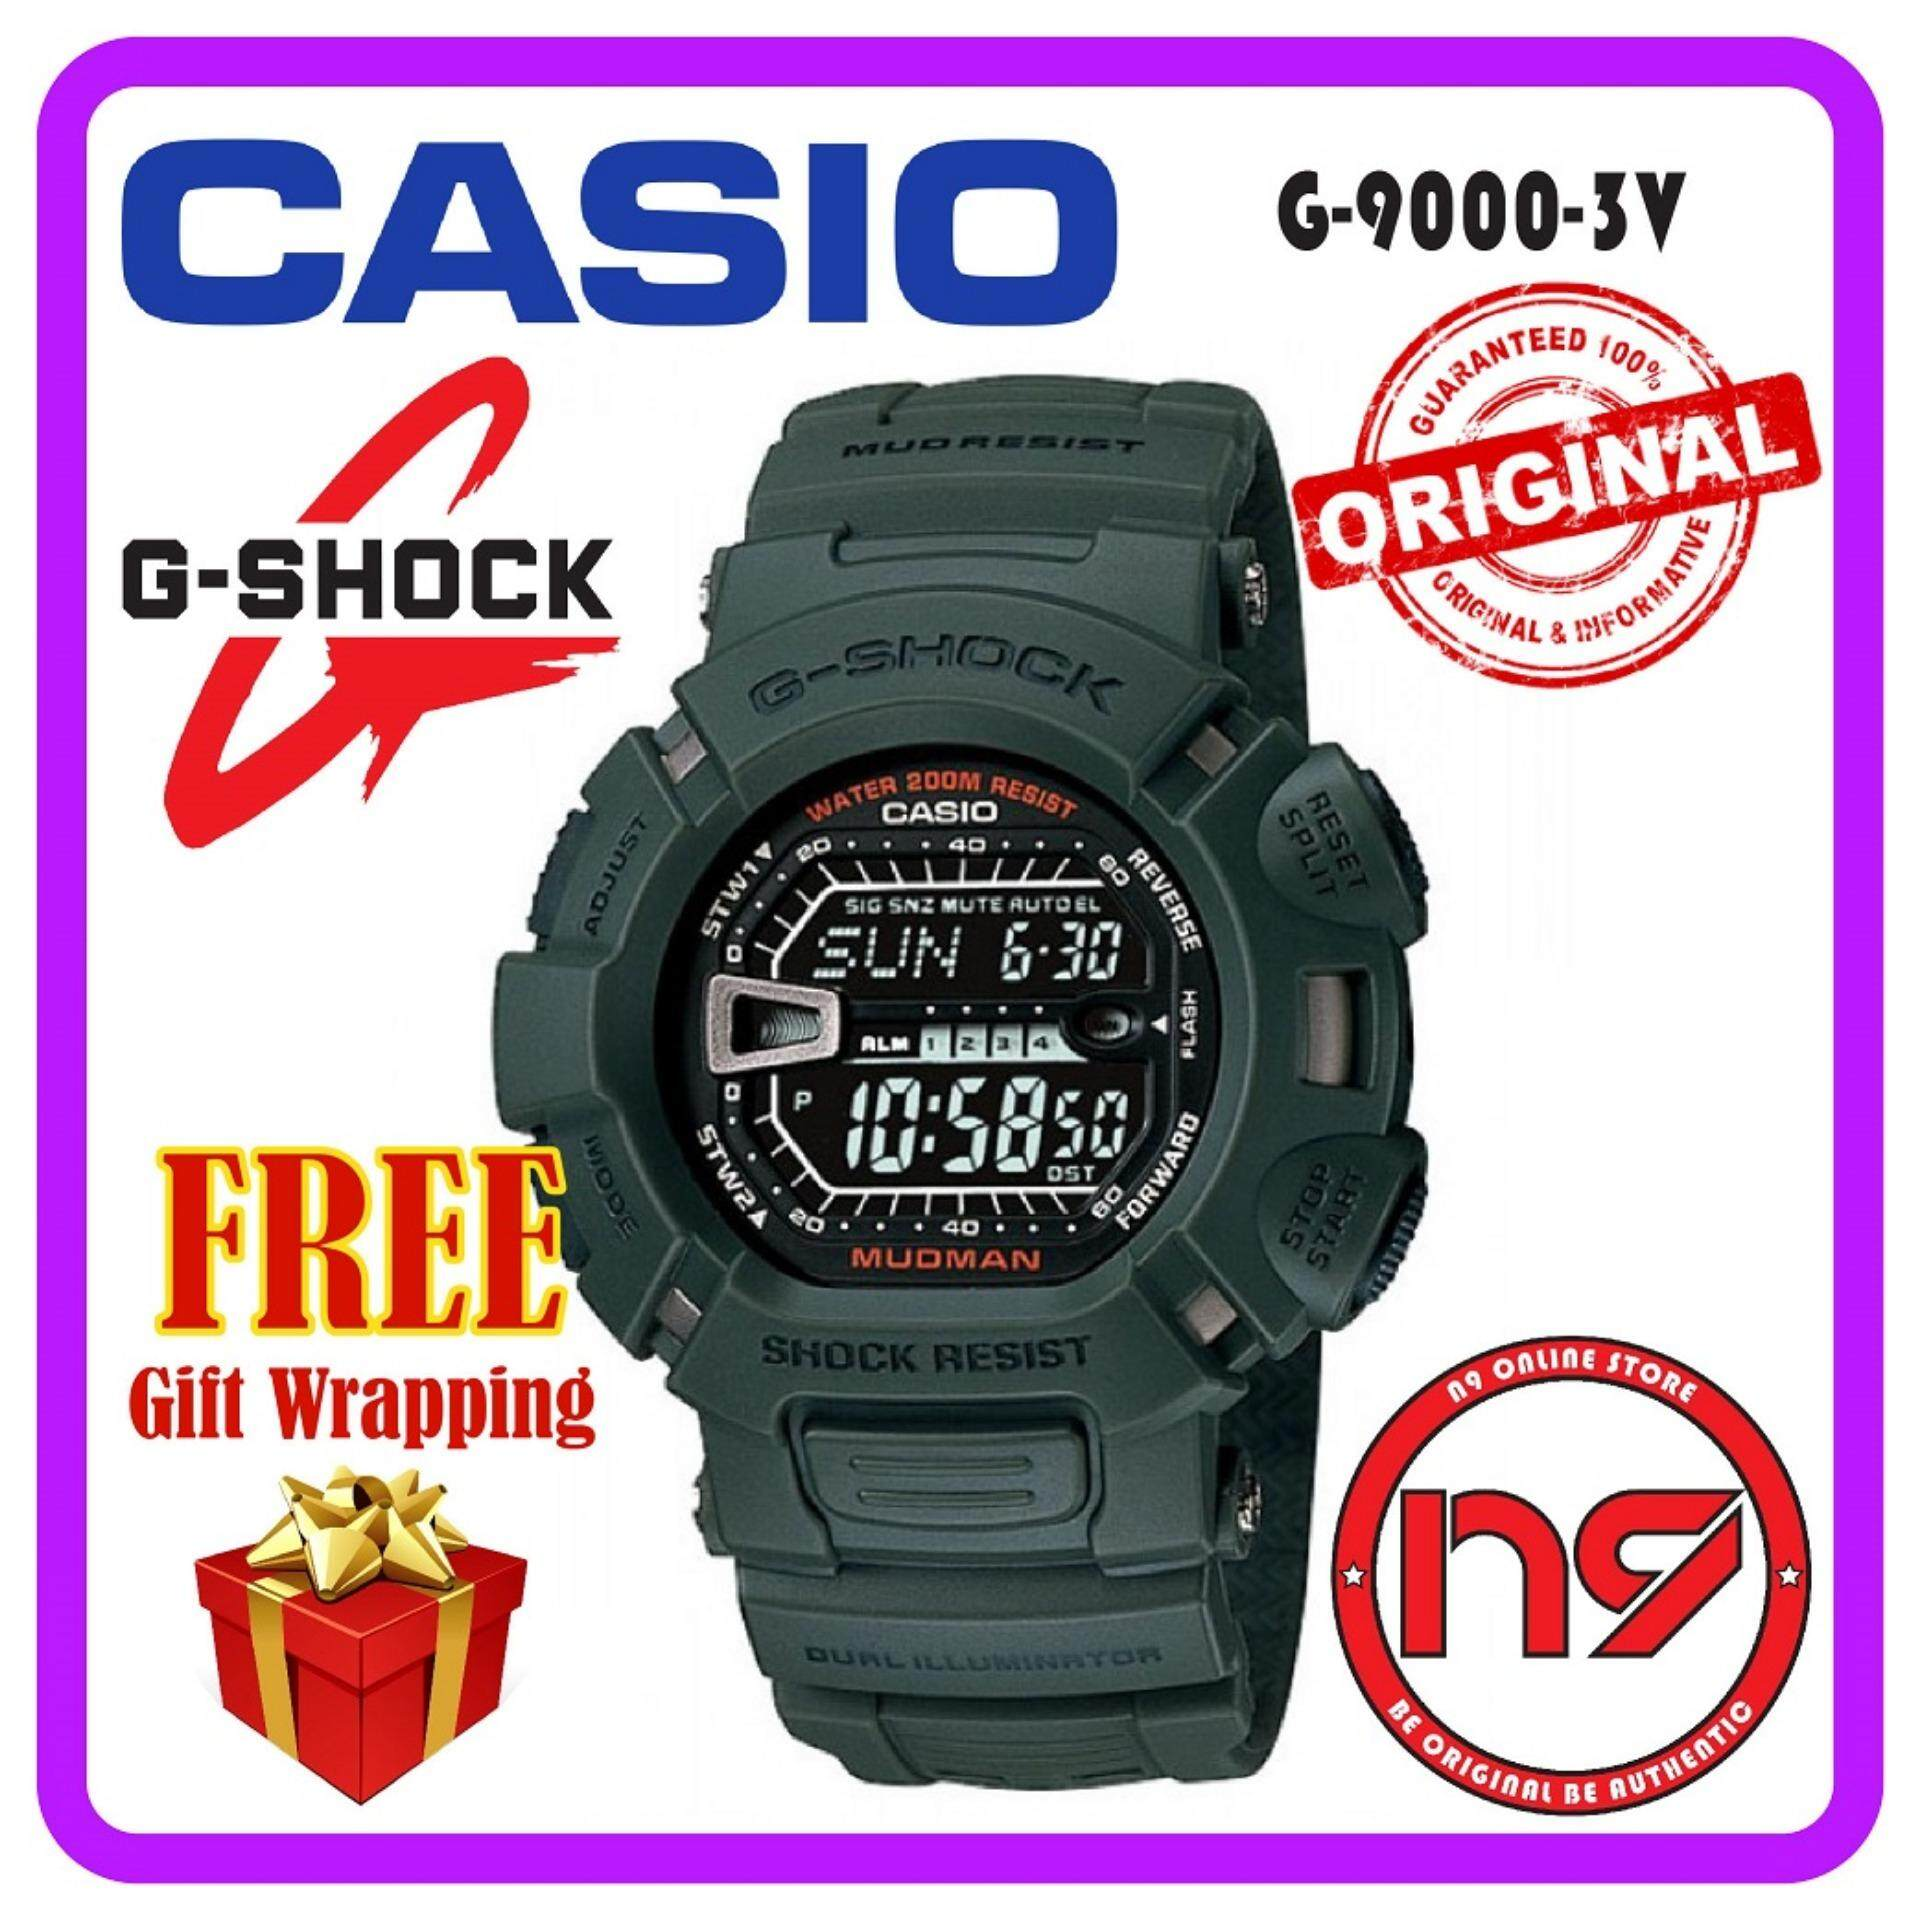 Casio G-Shock G-9000-3V Mudman Digital Men Military Green Sports Watch